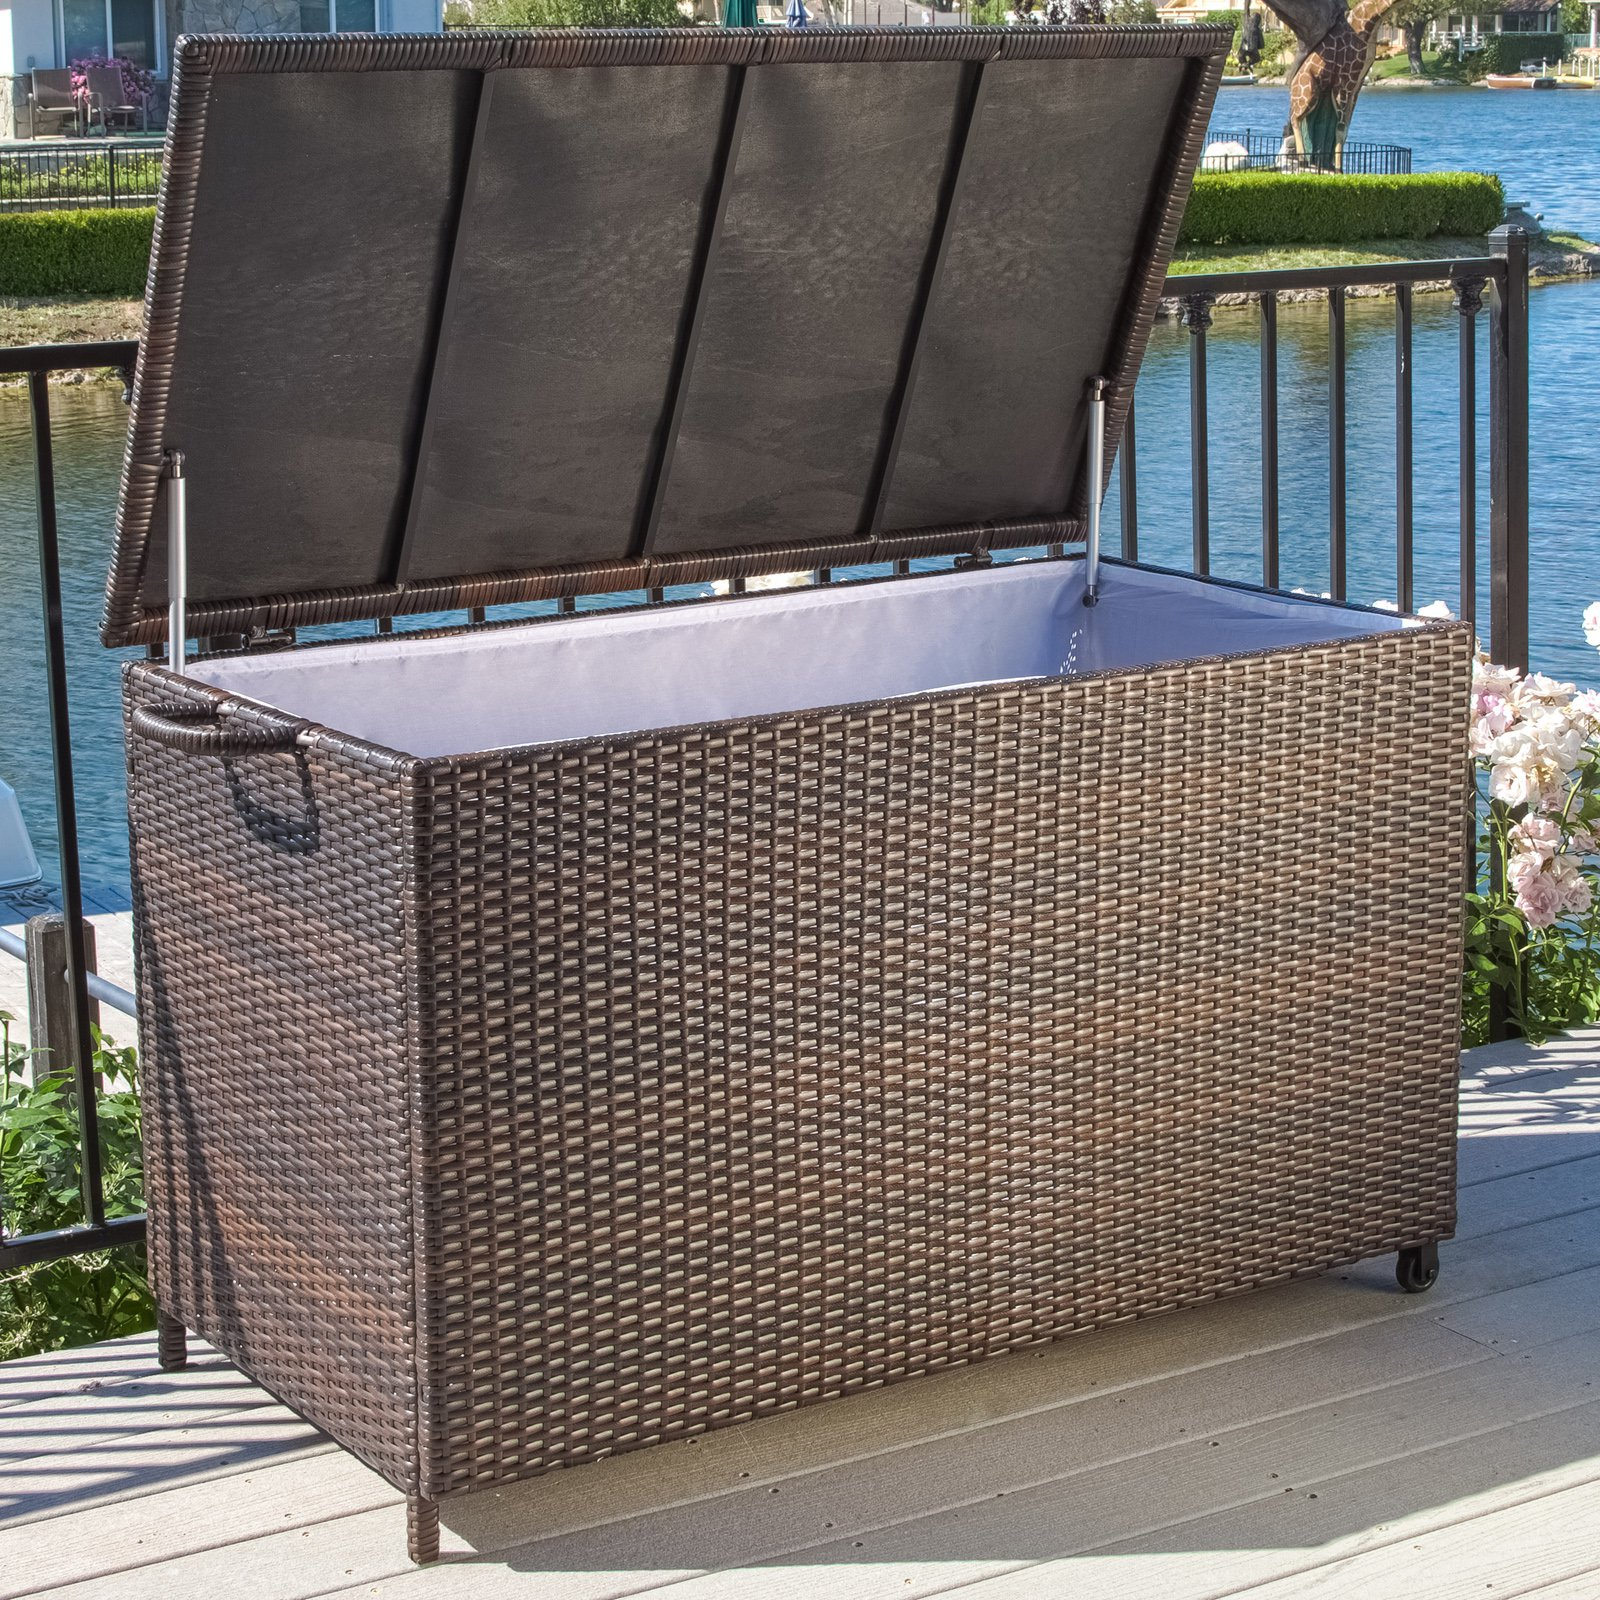 Keter 150 Gallon Deck Box | 150 Gallon Deck Storage Box | 150 Gallon Storage Box